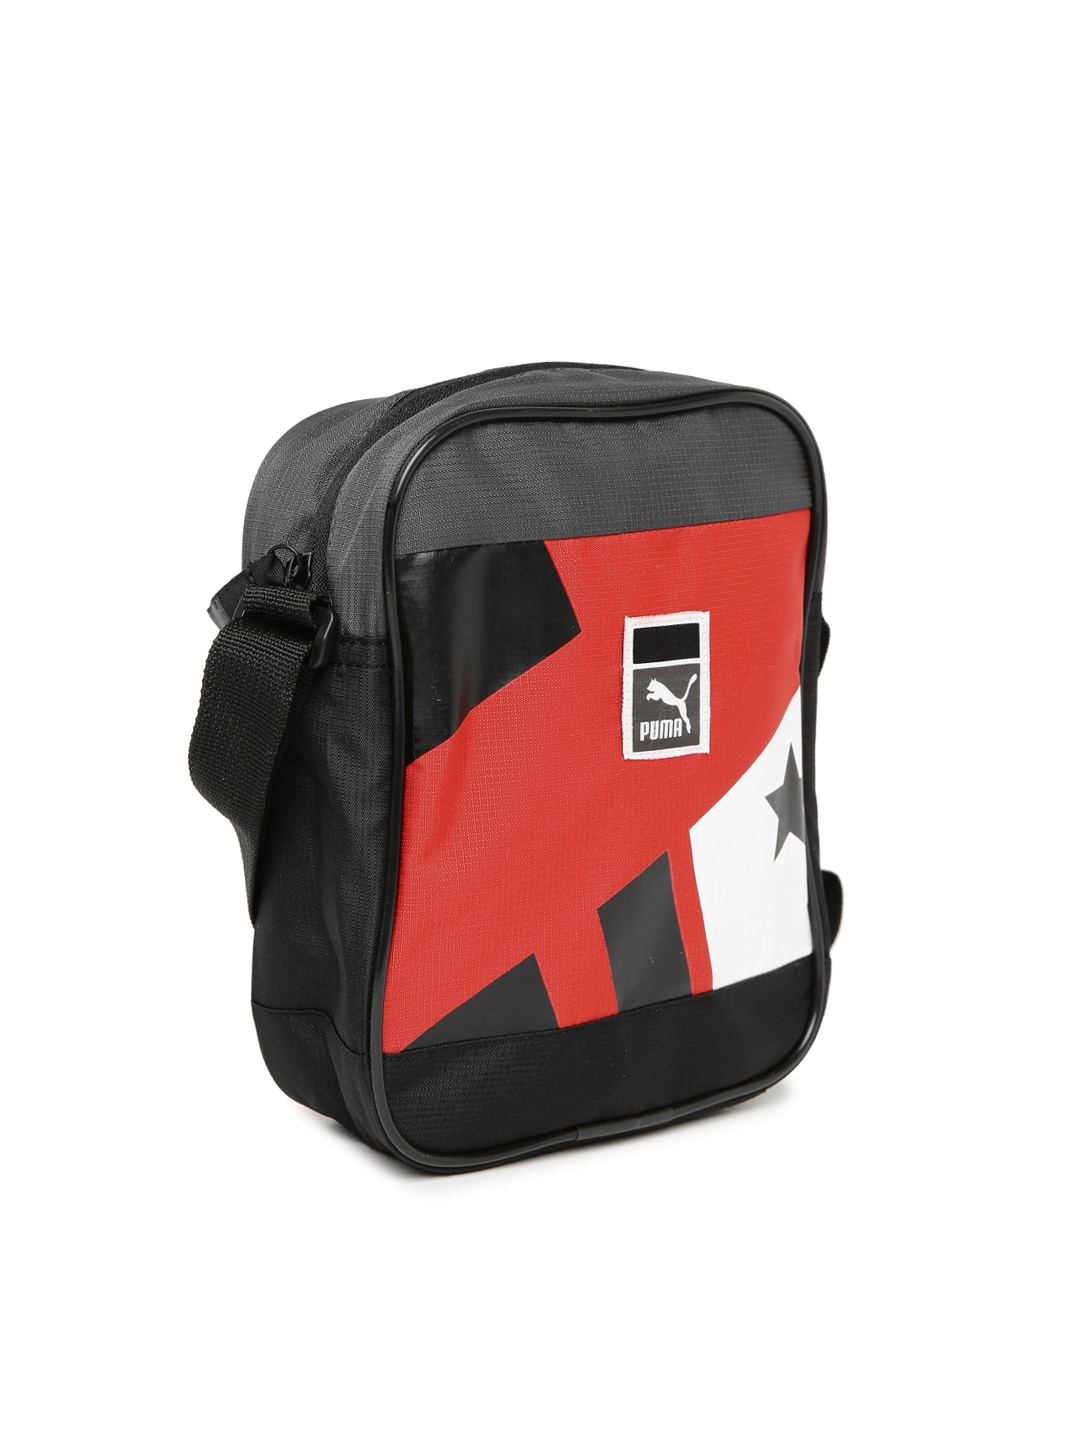 Trendy Looking Backpacks from Puma. There is no end to how much you will find while shopping for Puma backpacks online. Whether it's a classy looking backpack or something funky that you want, you are sure to find a backpack that you will love while browsing for Puma backpacks online.